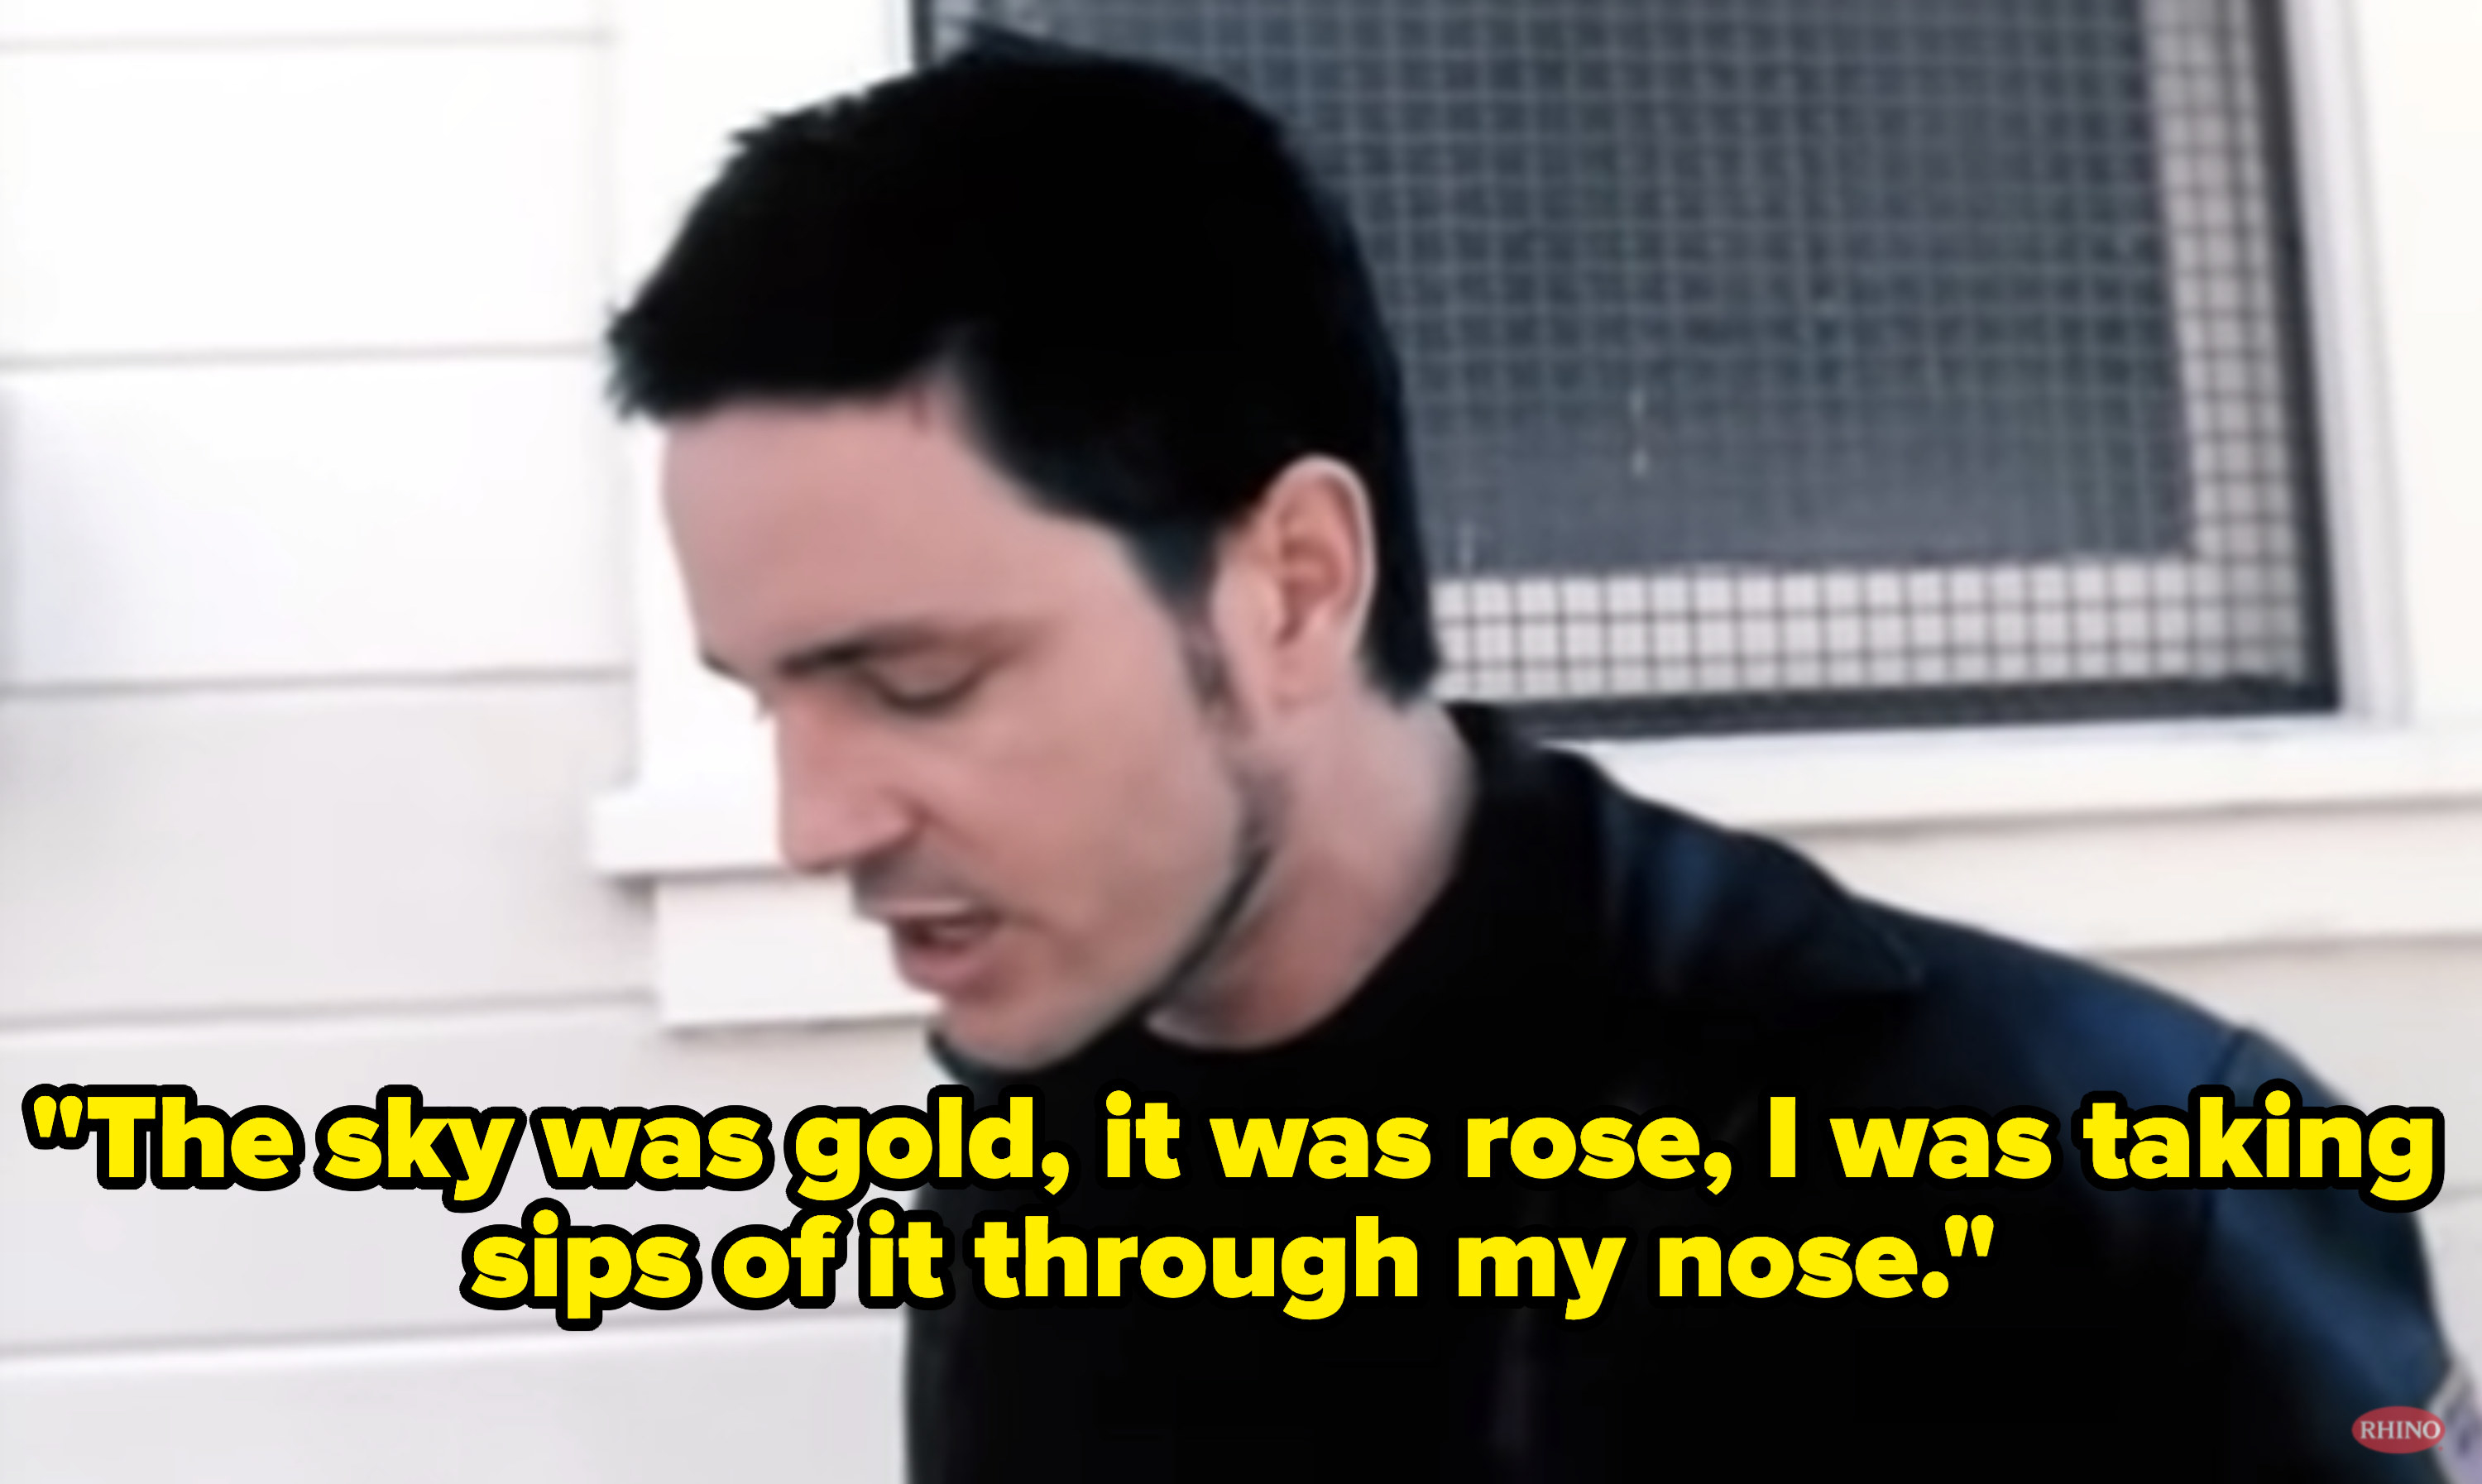 Stephen singing outside a house.